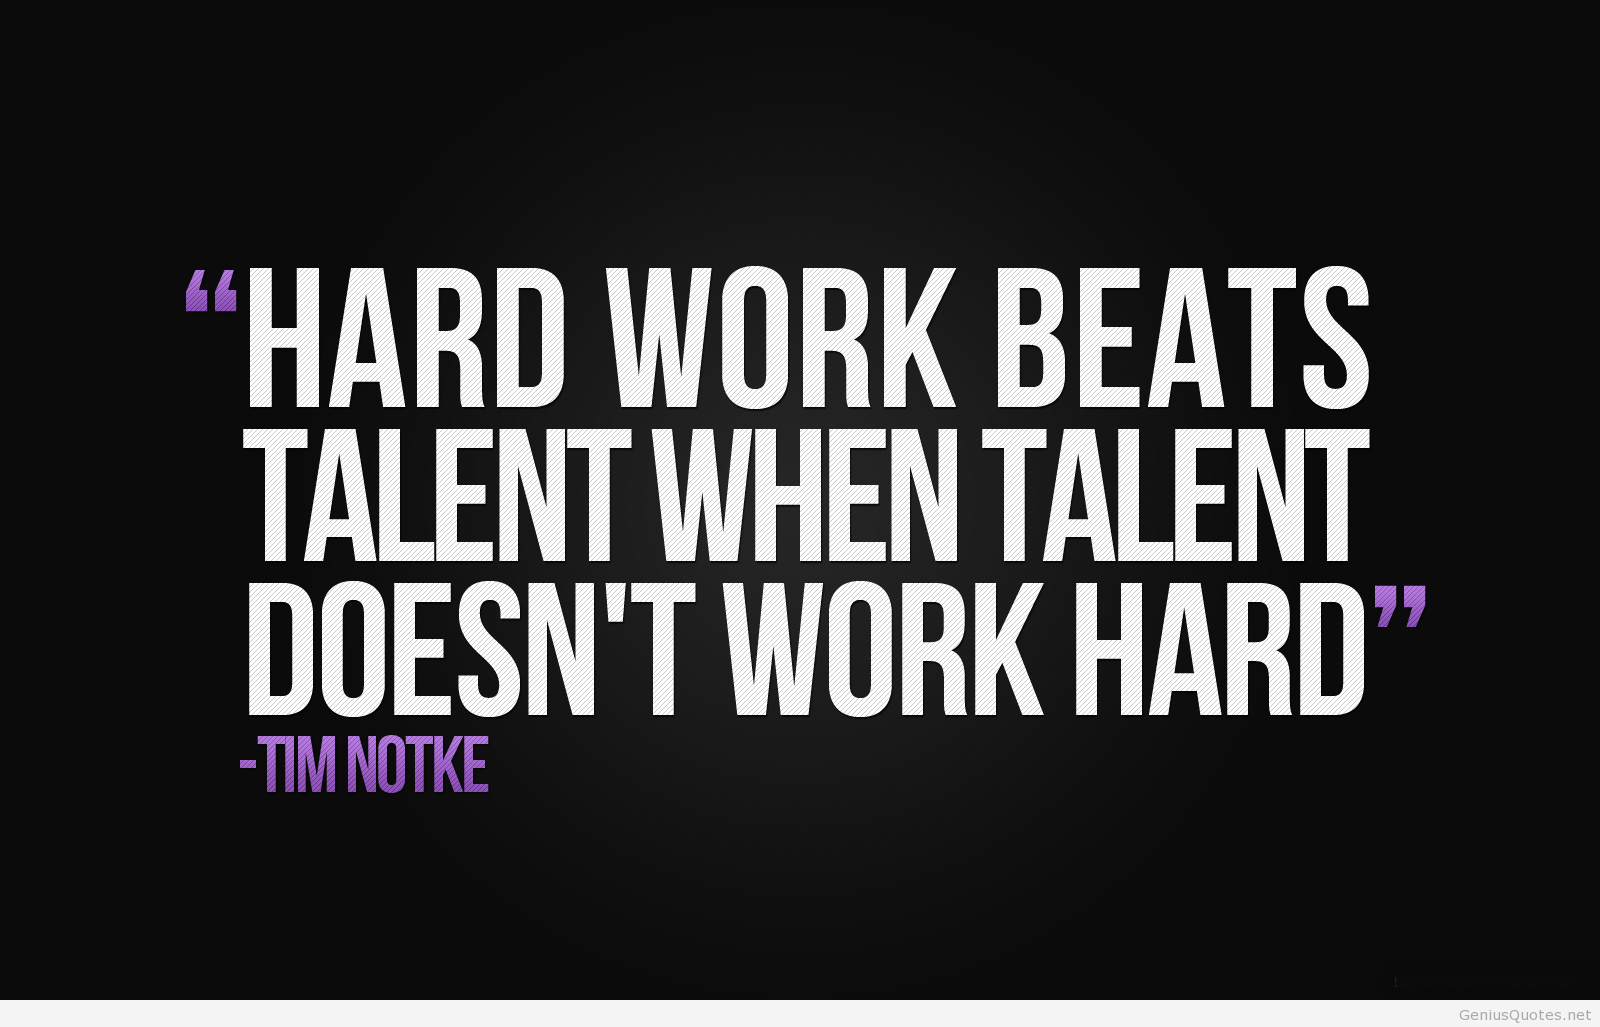 working-hard-enough-to-bring-out-the-very-best-in-to-attain-the-success-that-you-seek-hard-work-beats-talent-if-it-isnt-pushing-hard-enough.